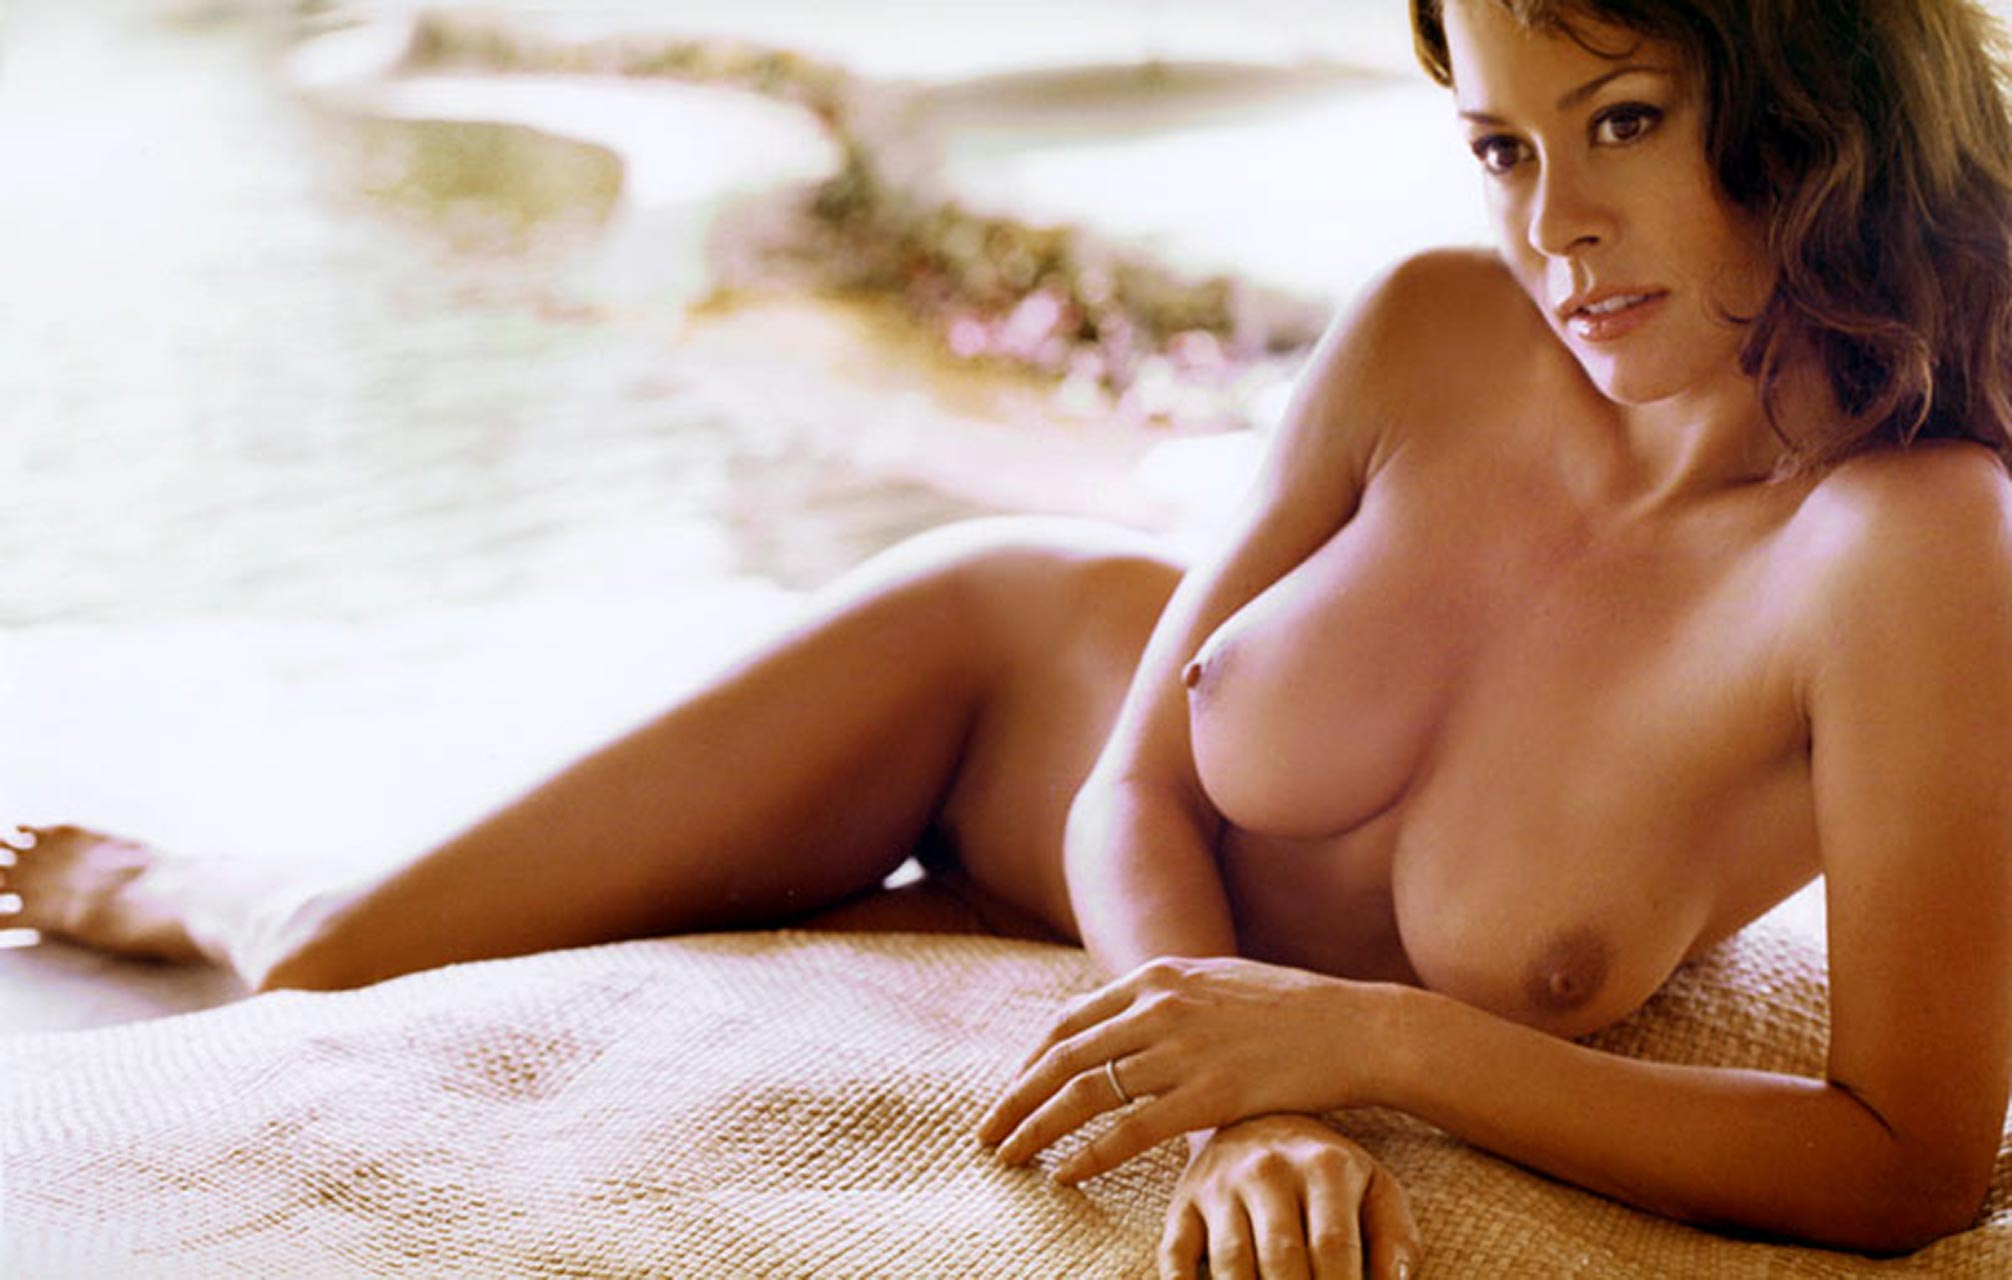 Sex tape of brooke burke